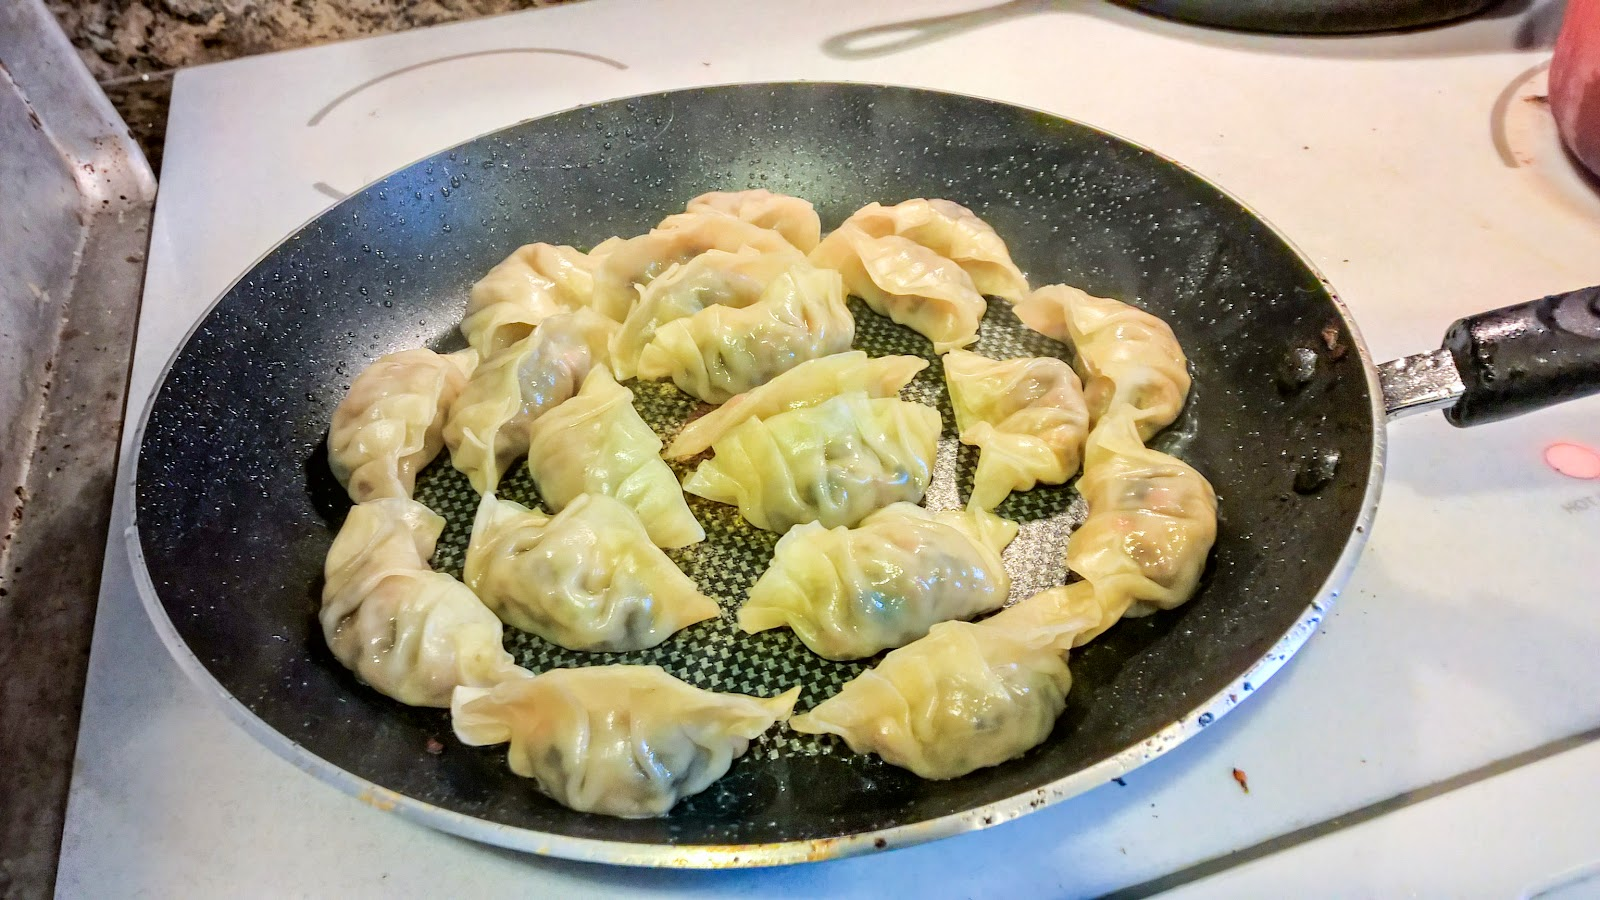 cooking homemade vegetarian potstickers